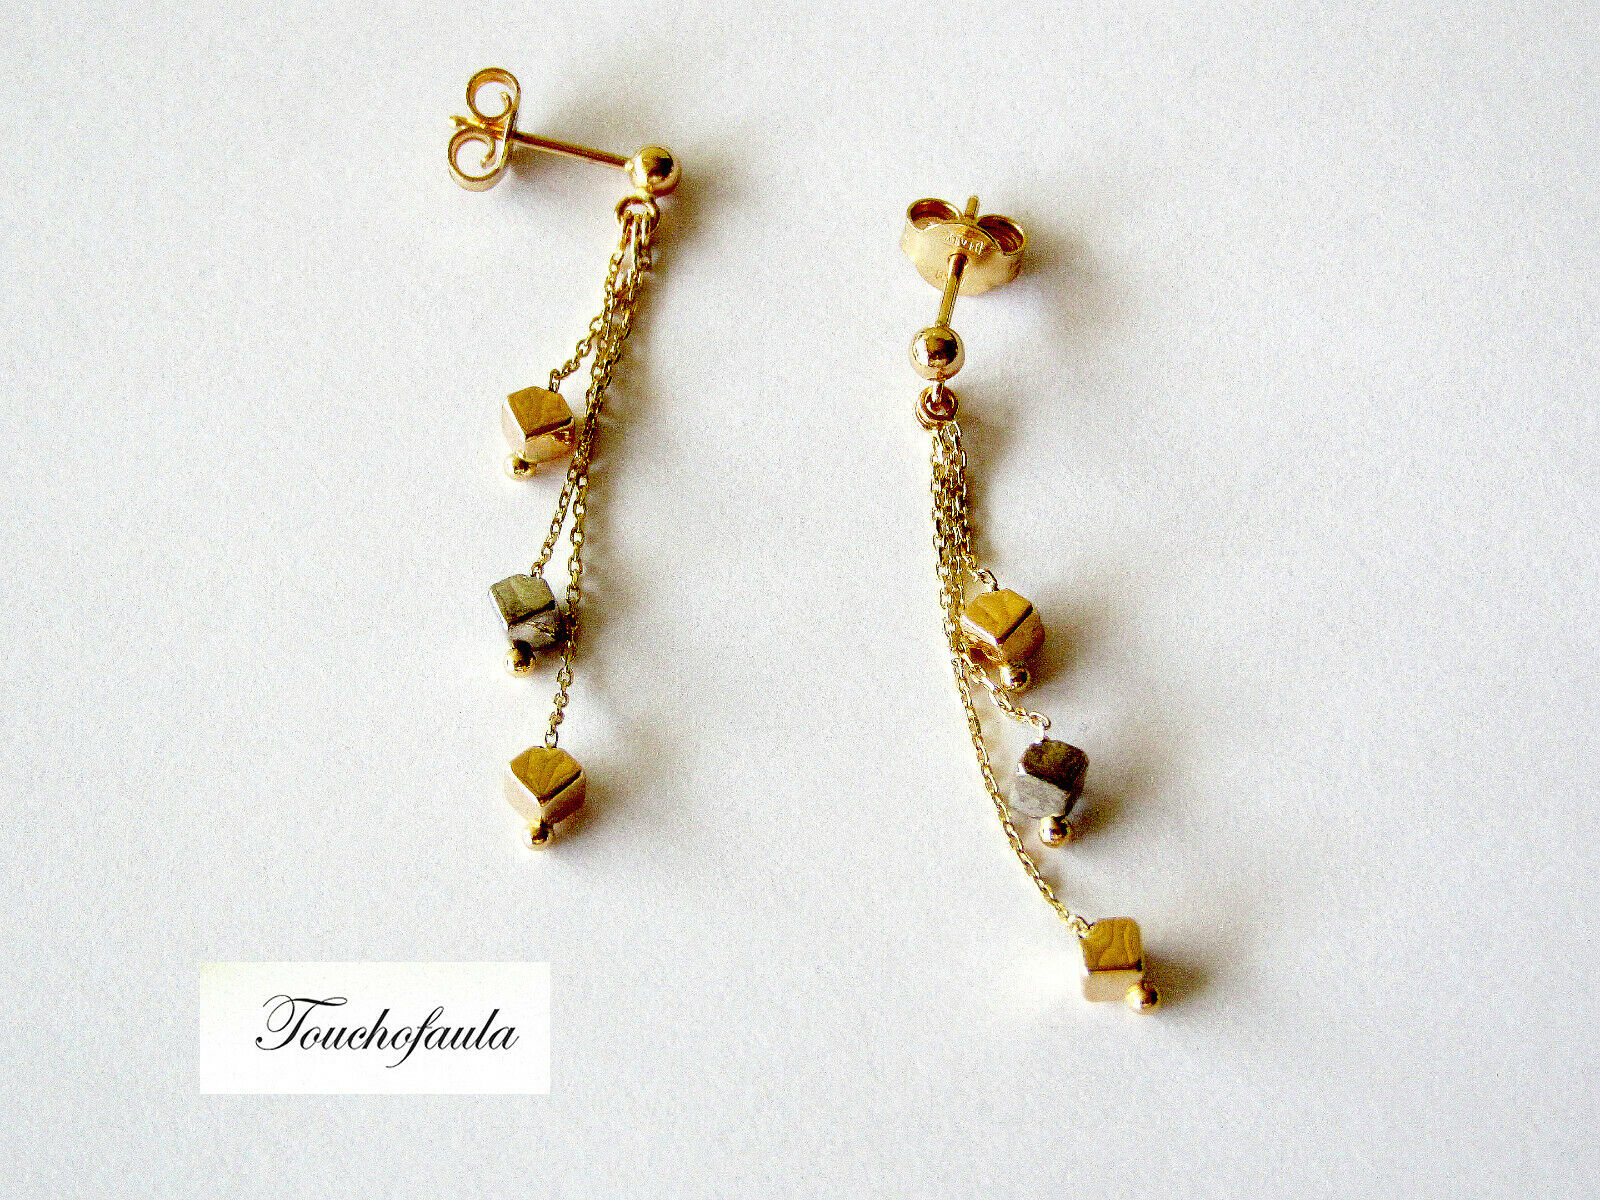 14K YELLOW gold DANGLE EARRINGS WITH TRI colorD CUBES HIGH POLISHED 1.7 GRAMS